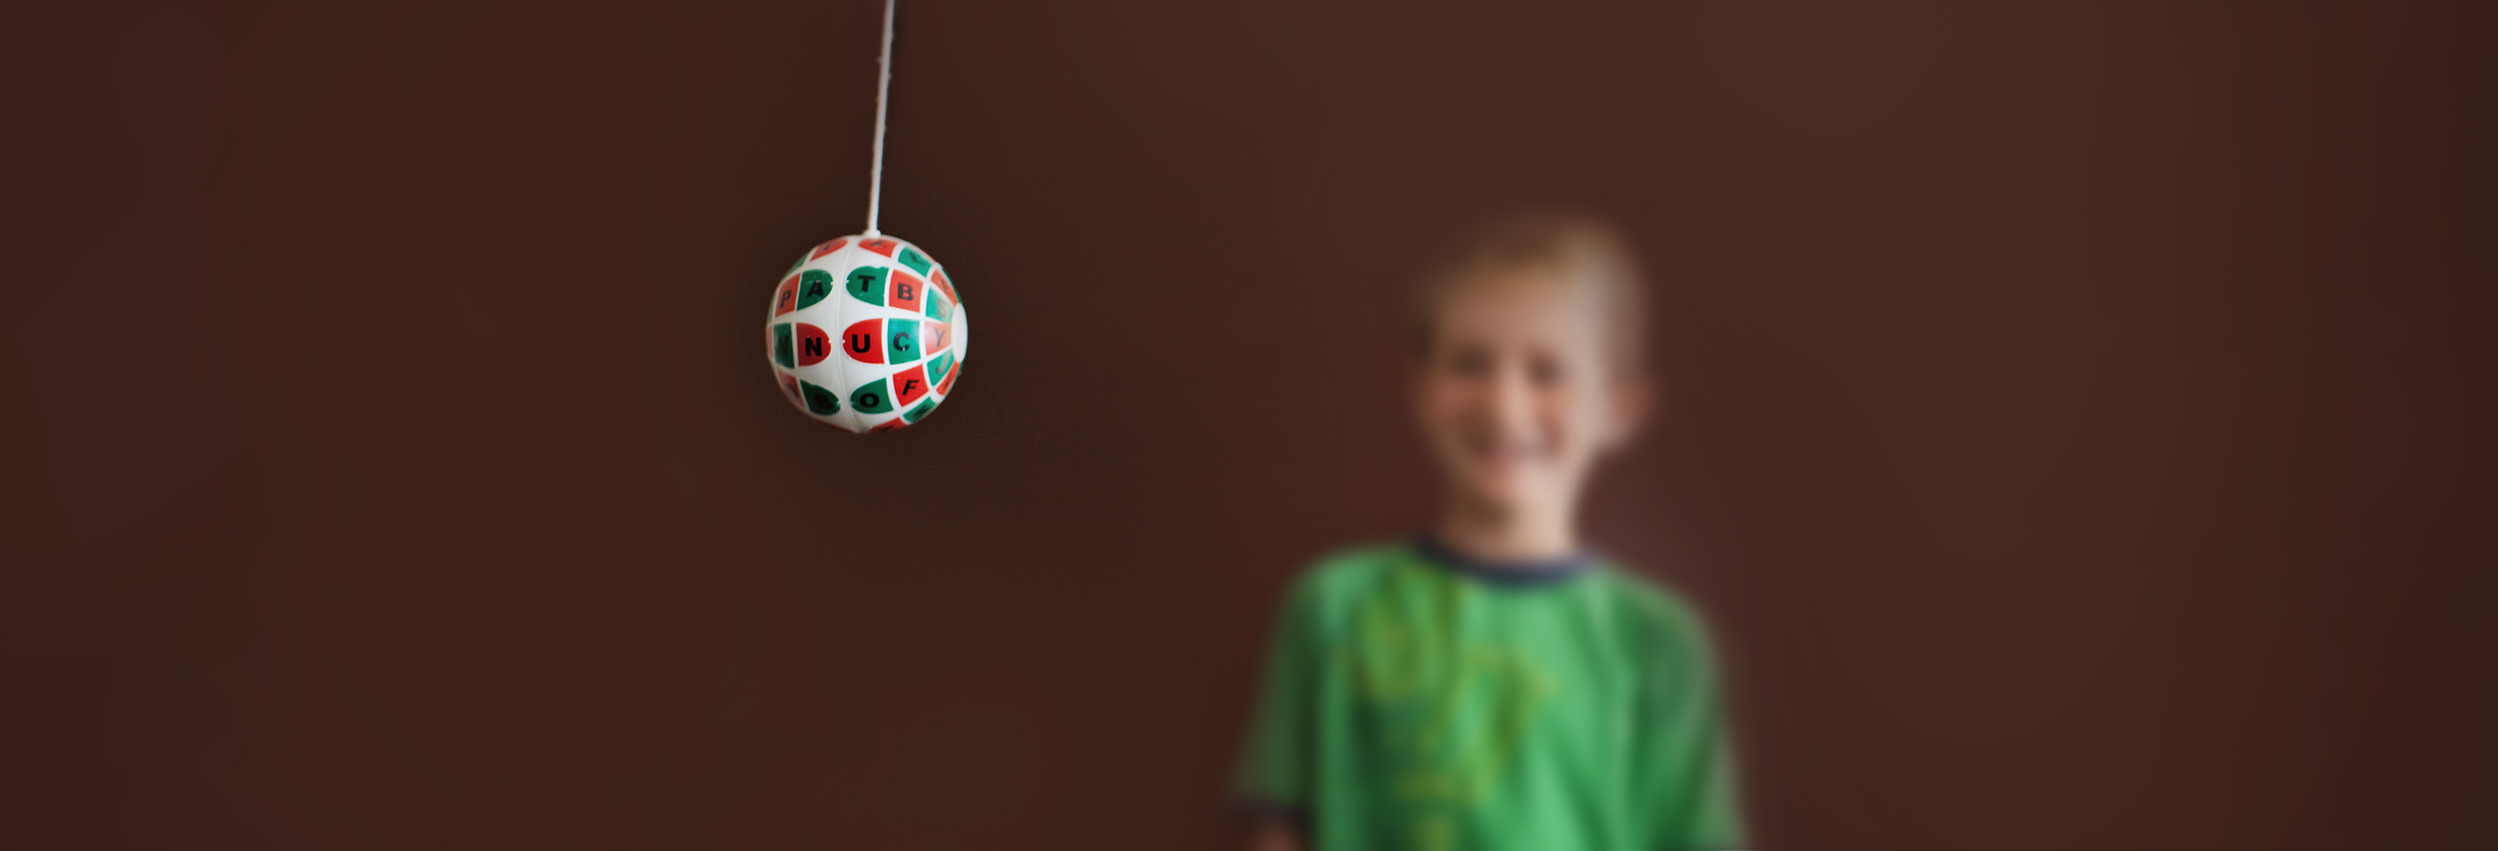 Vision-therapy-ball